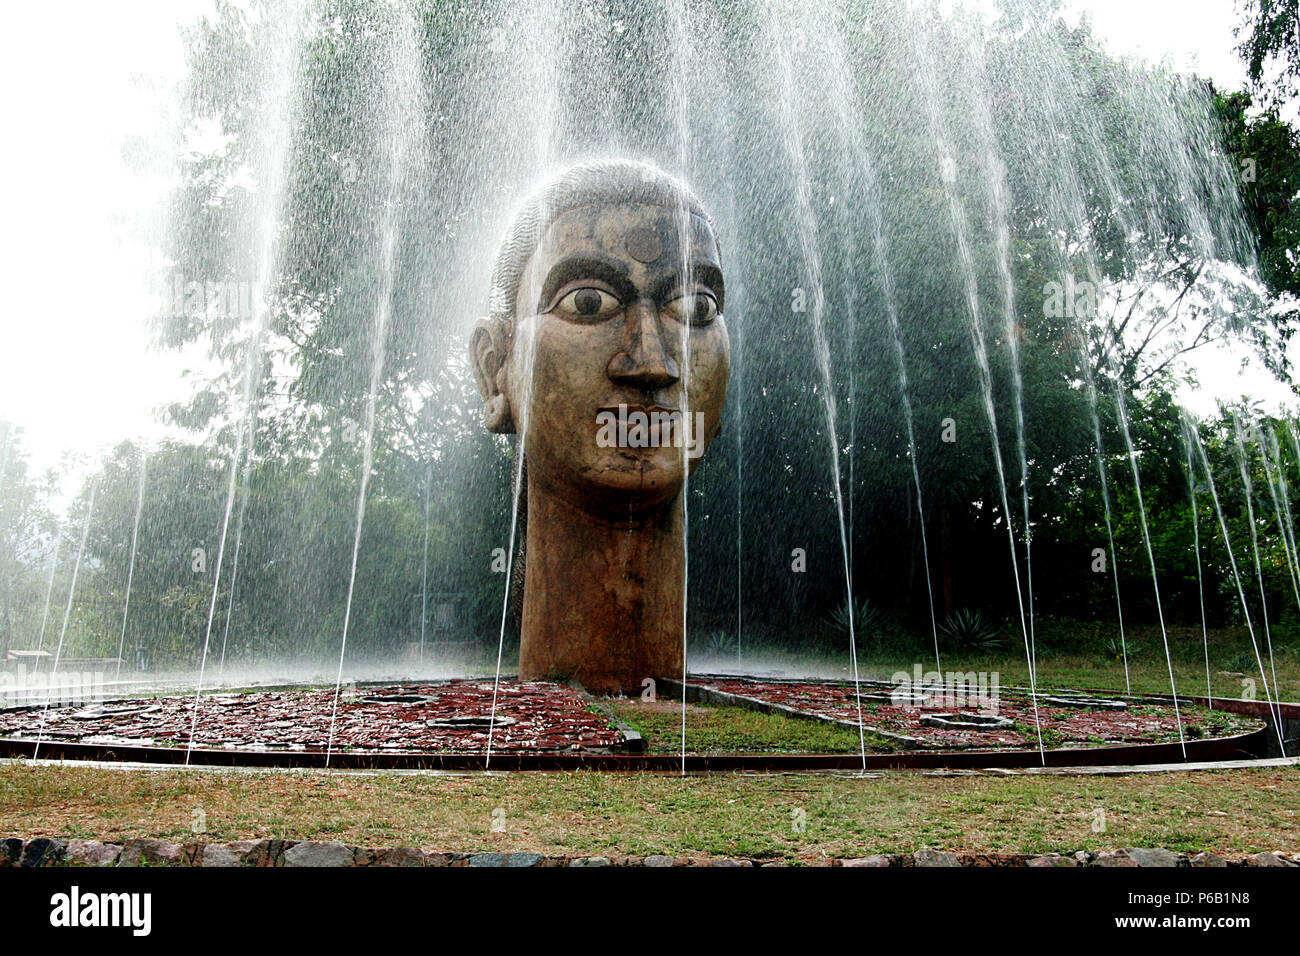 View of frightened eyes and forceful jets of fountain at Kannada University Campus in Hampi, Karnataka, India, Asia - Stock Image